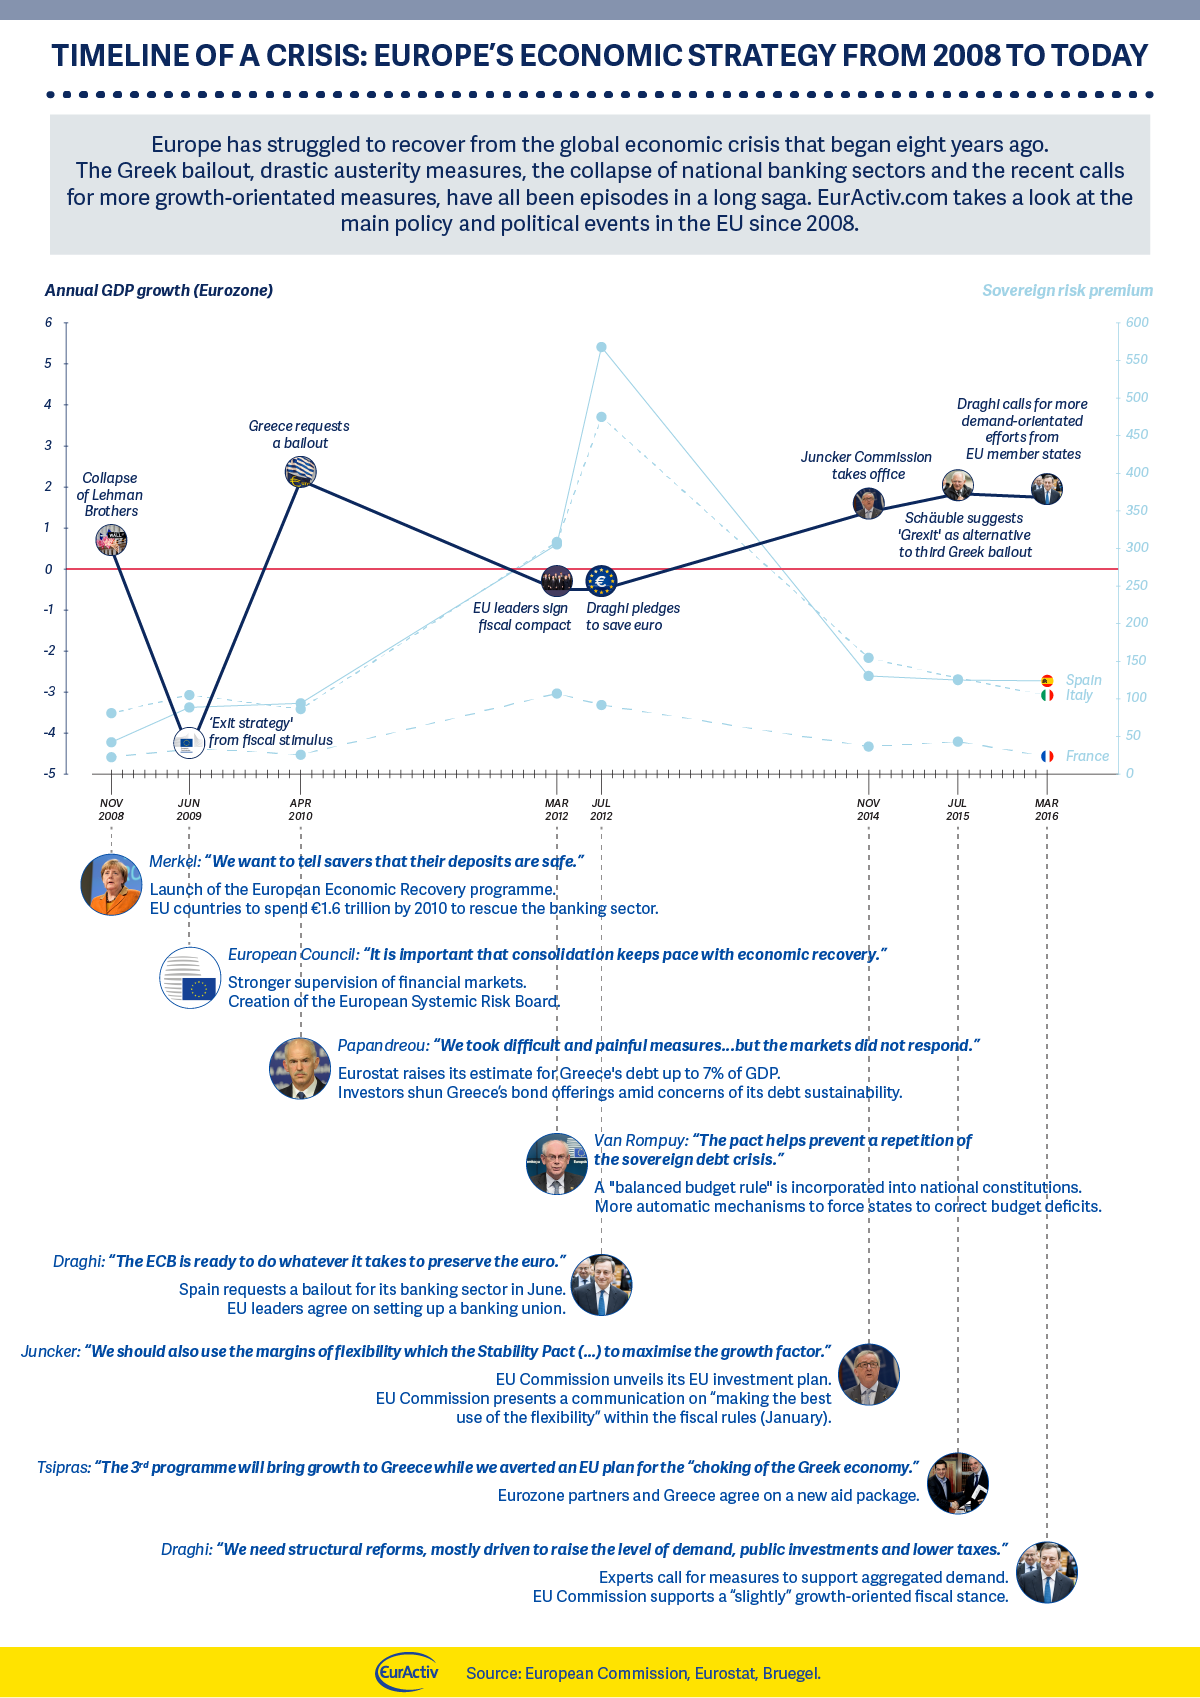 Timeline of a crisis: Europe's economic strategy from 2008 to today